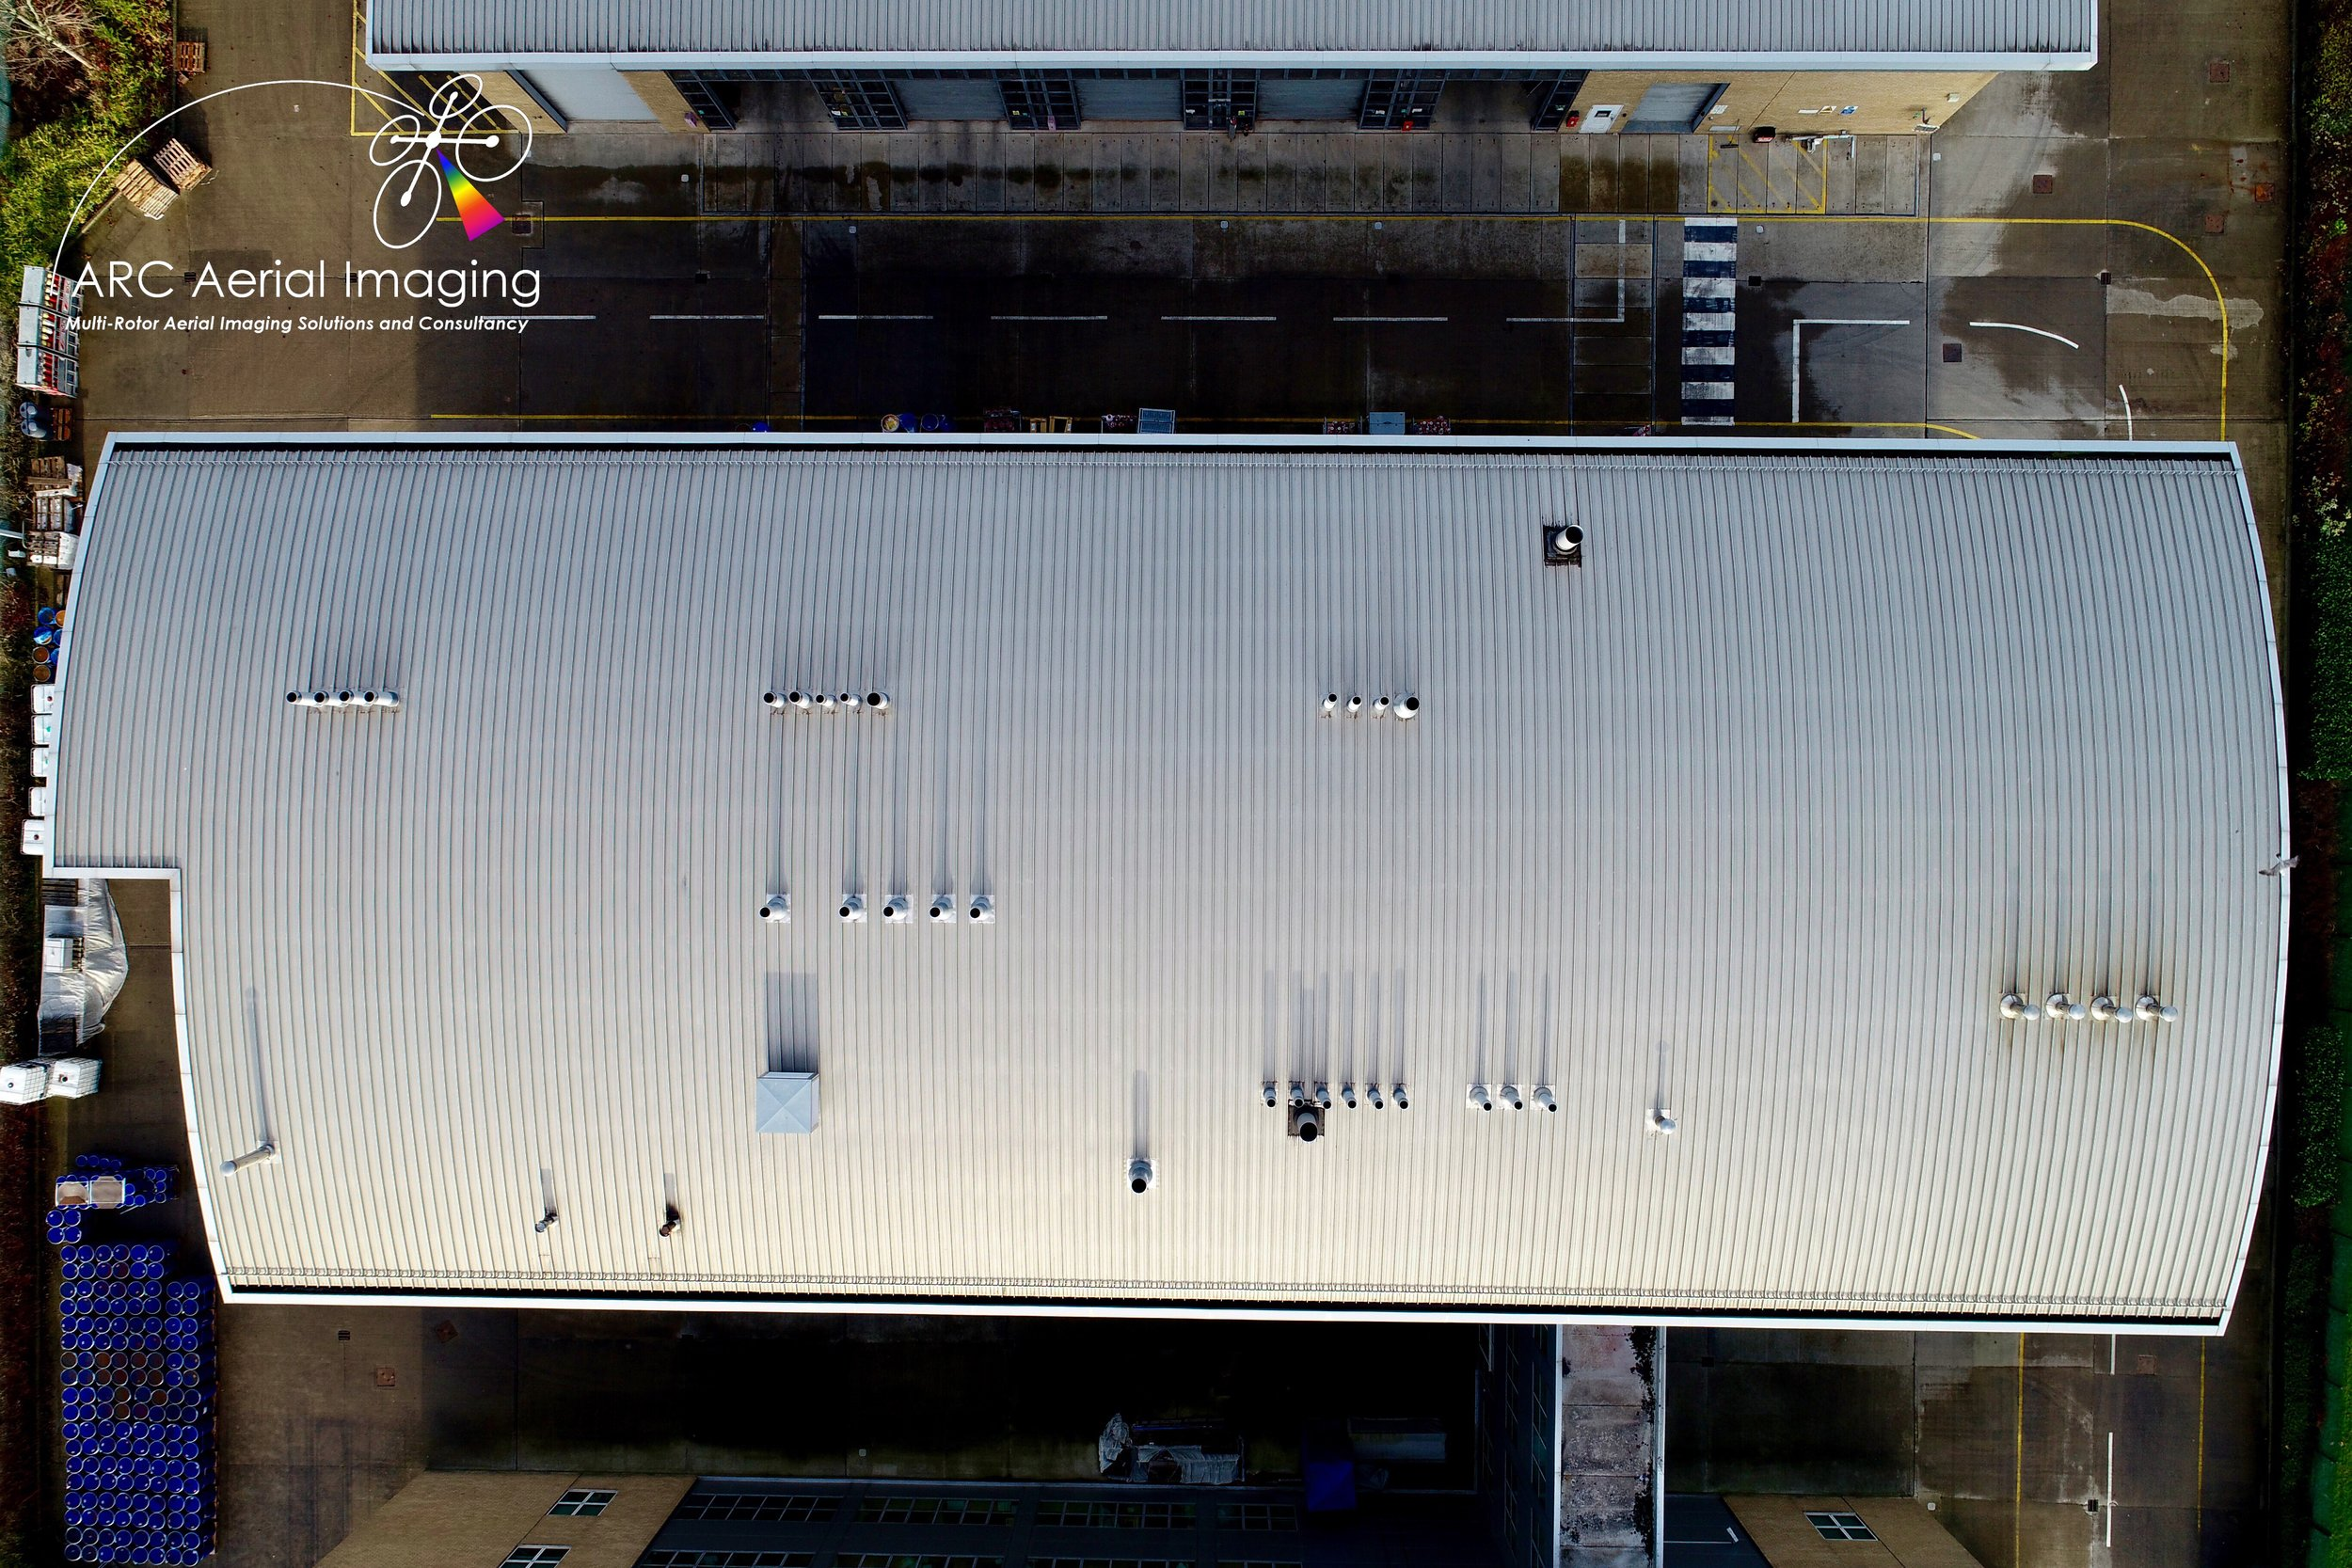 ARC Aerial Imaging Roof 1.jpg